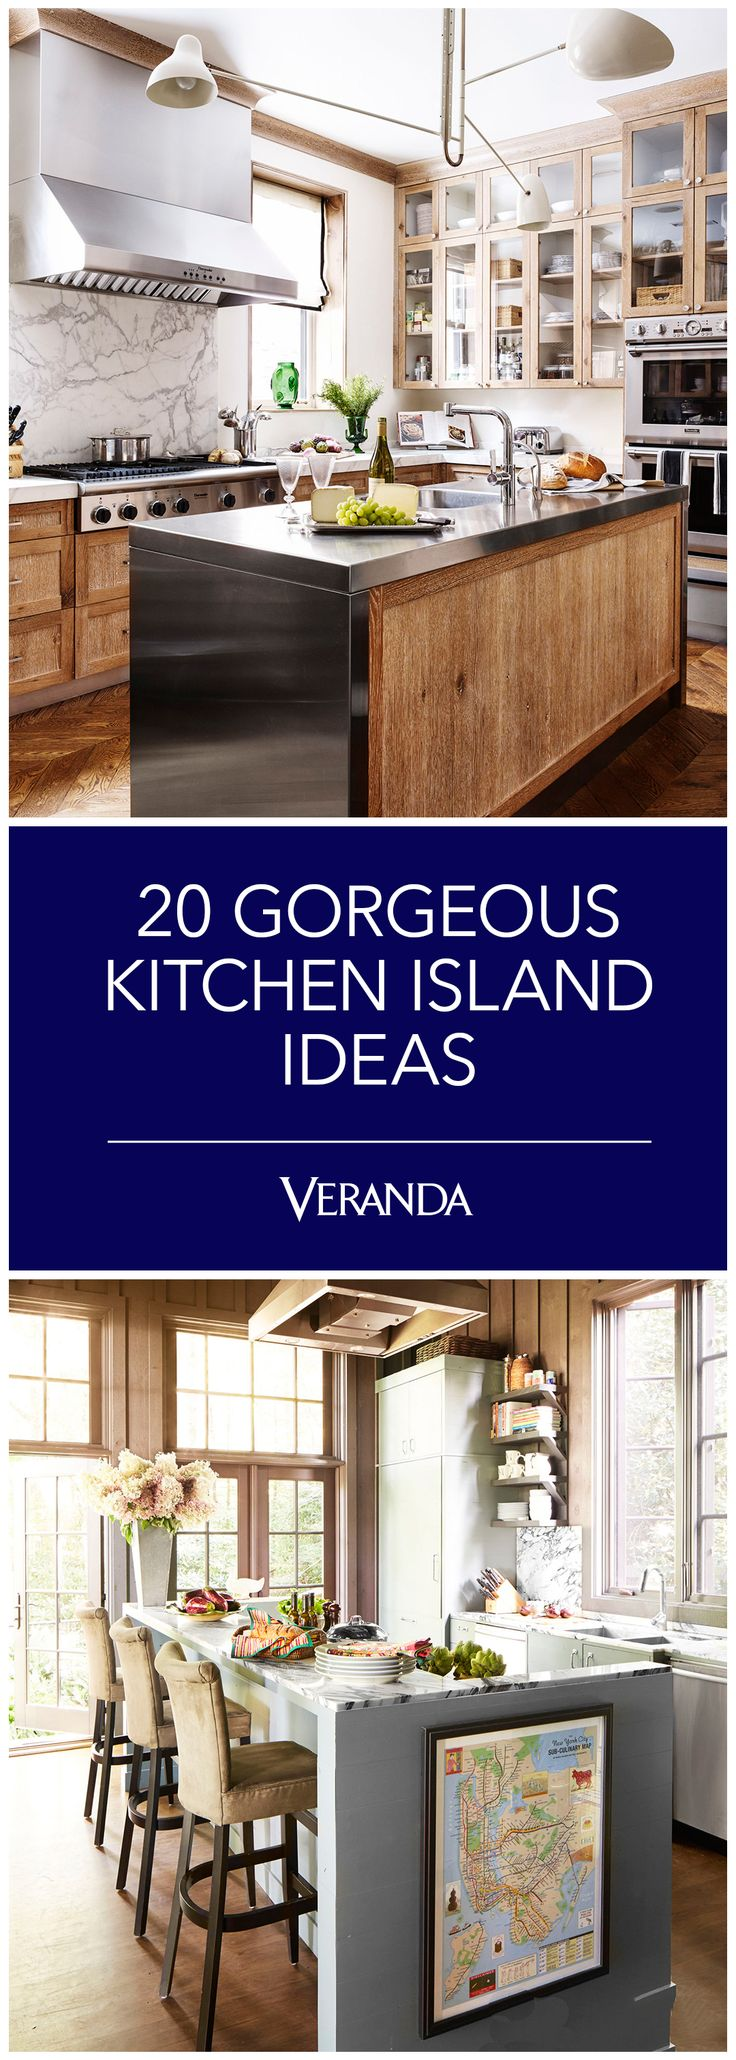 Beautiful Kitchens Magazine 278 Best Images About Kitchens We Love On Pinterest Veranda